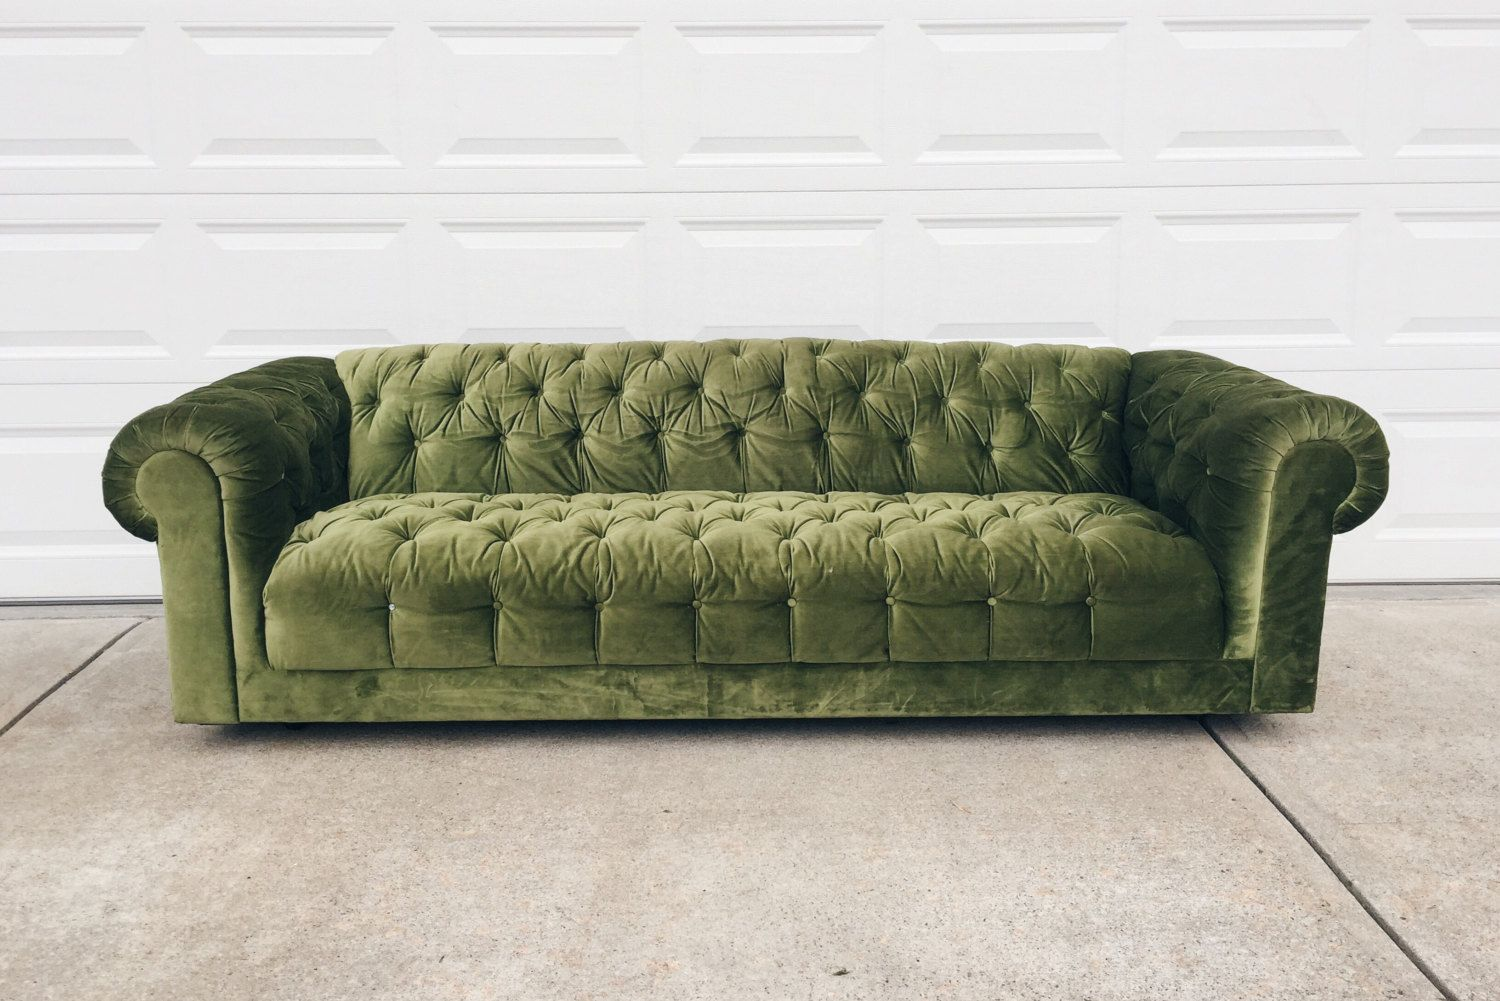 Genial Green Velvet Chesterfield Sofa, Vintage Tufted Sofa, Green Velvet Tufted  Sofa